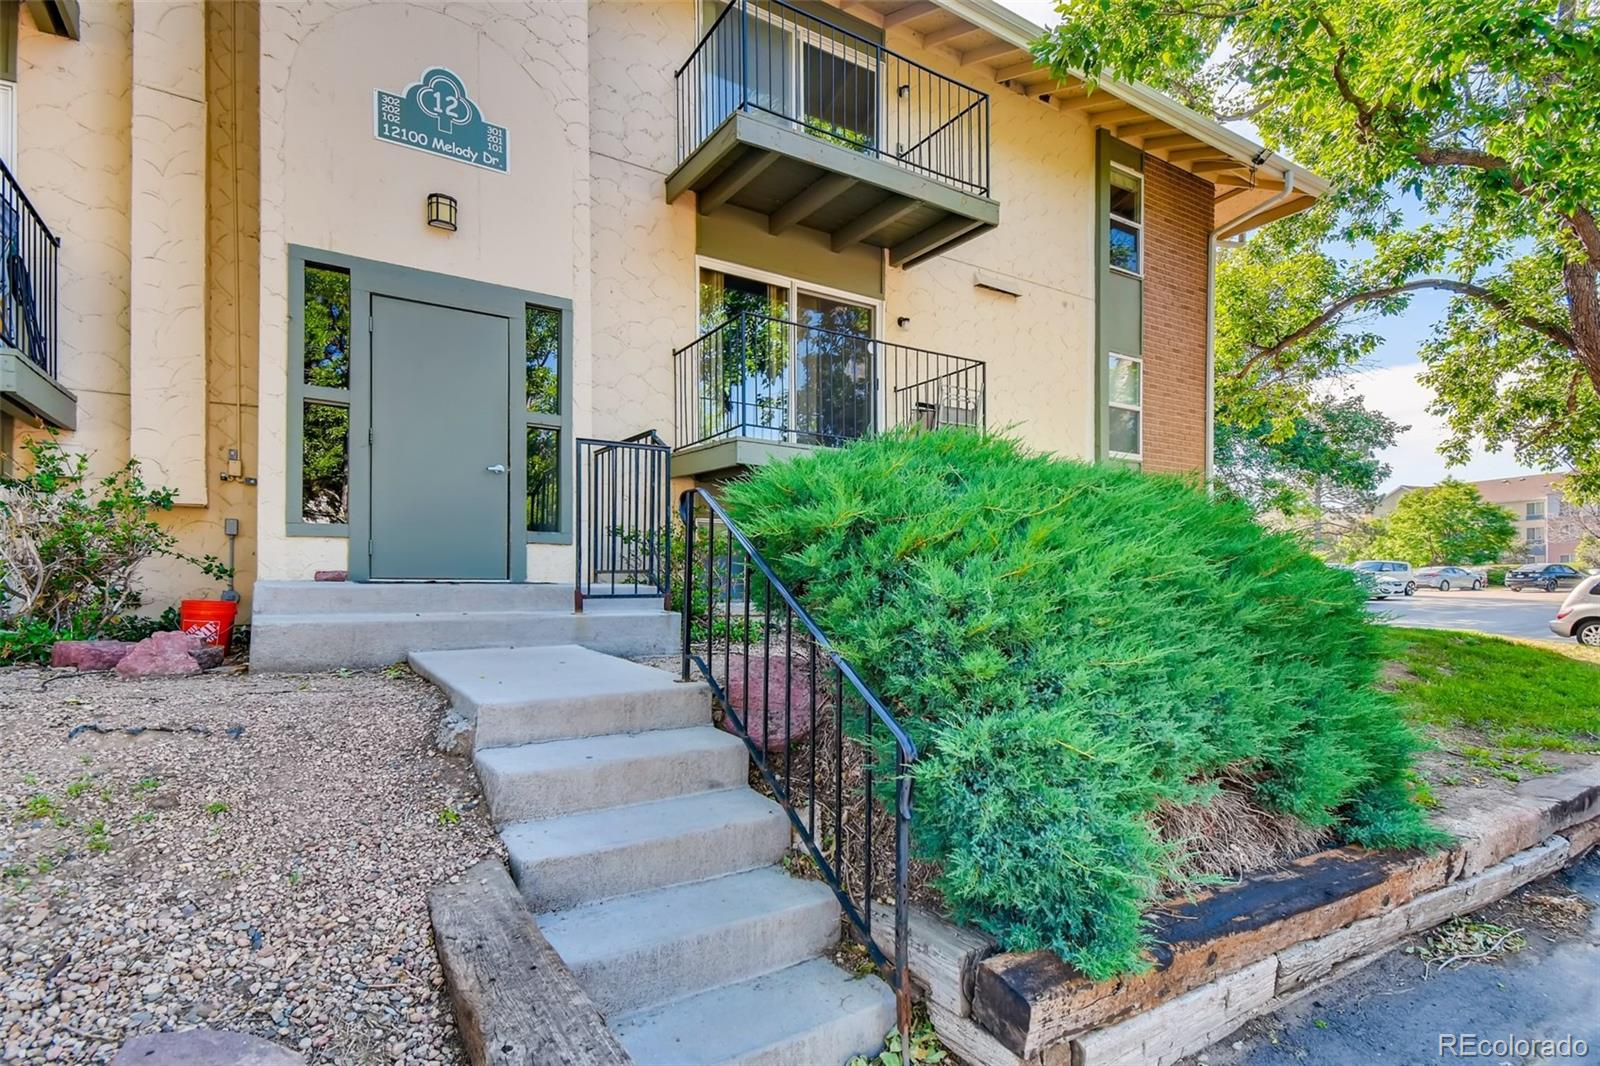 MLS# 4354857 - 2 - 12100 Melody Drive #301, Westminster, CO 80234